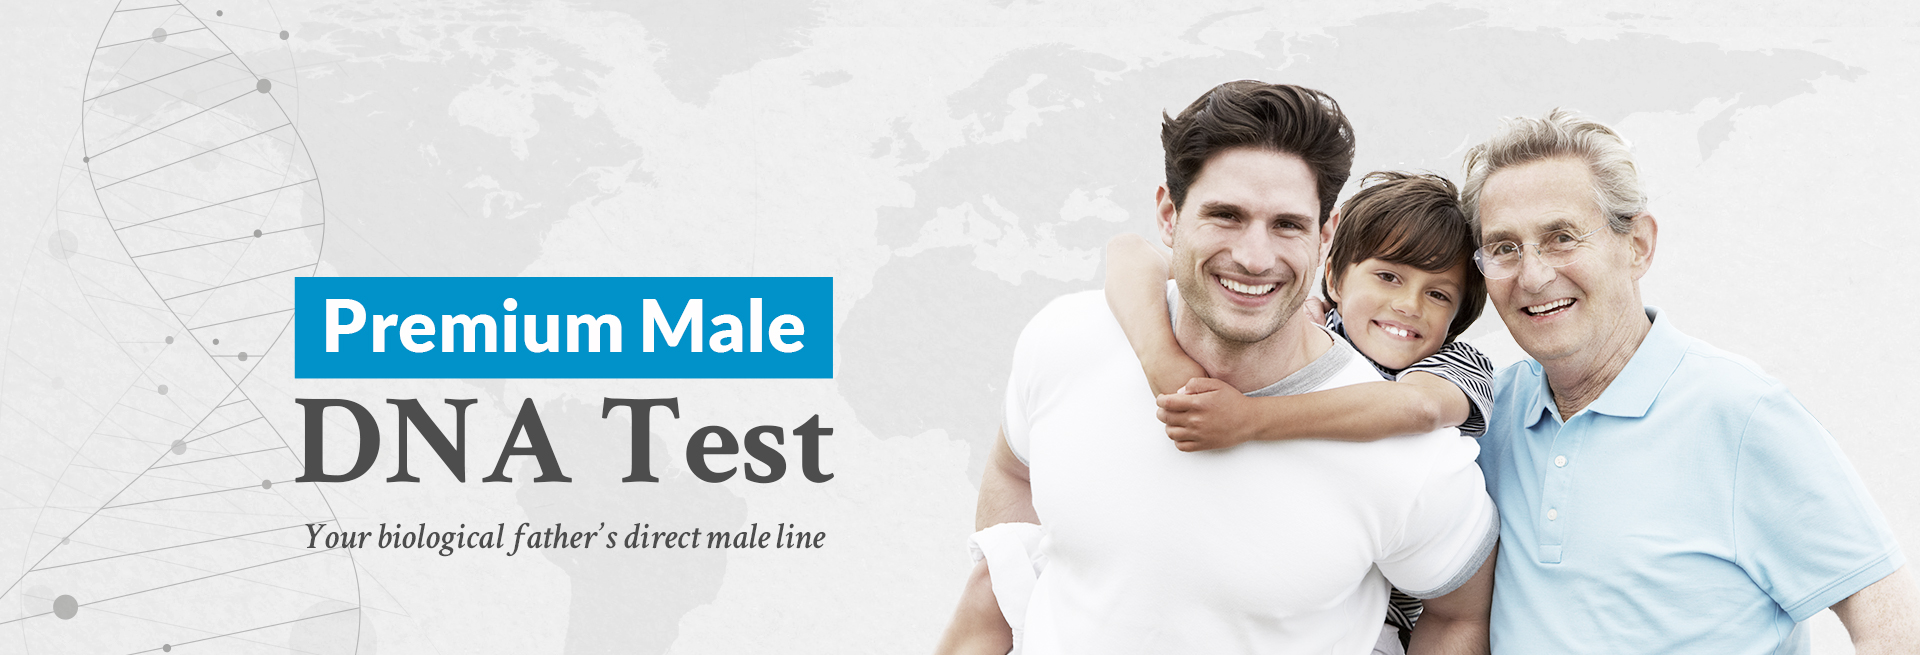 Premium Male DNA Test